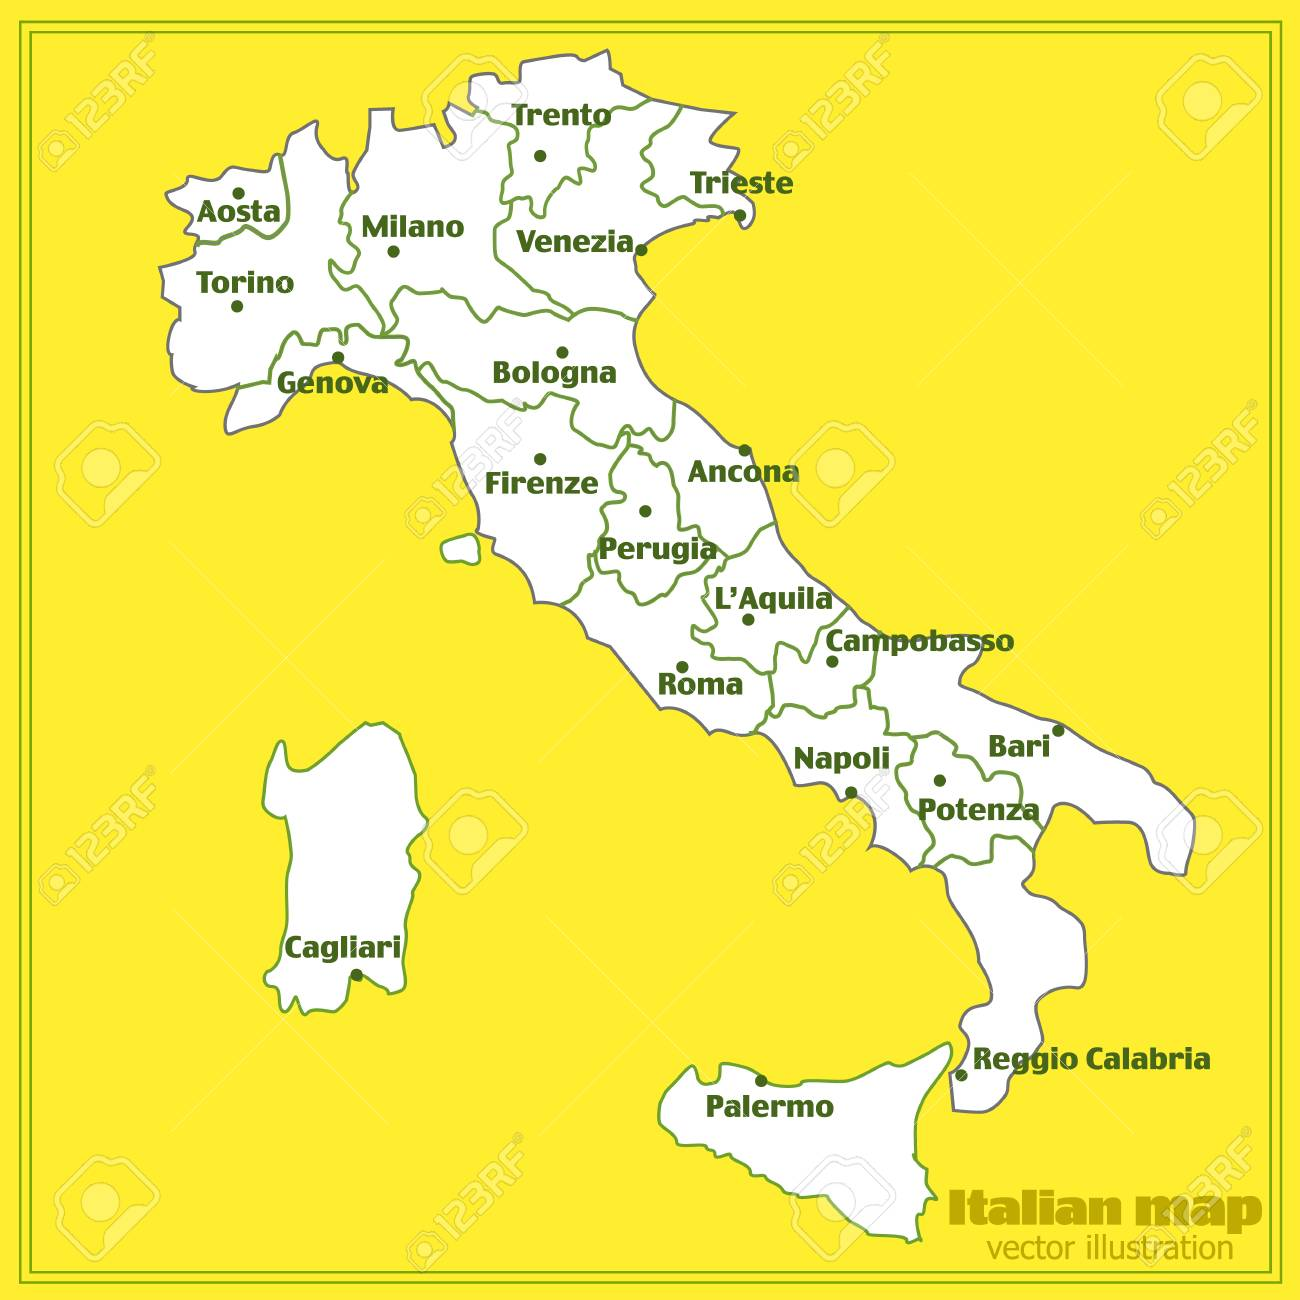 Map Of Italy With Main Cities.Map Of Italy With Red Background Italy Map With Italian Big